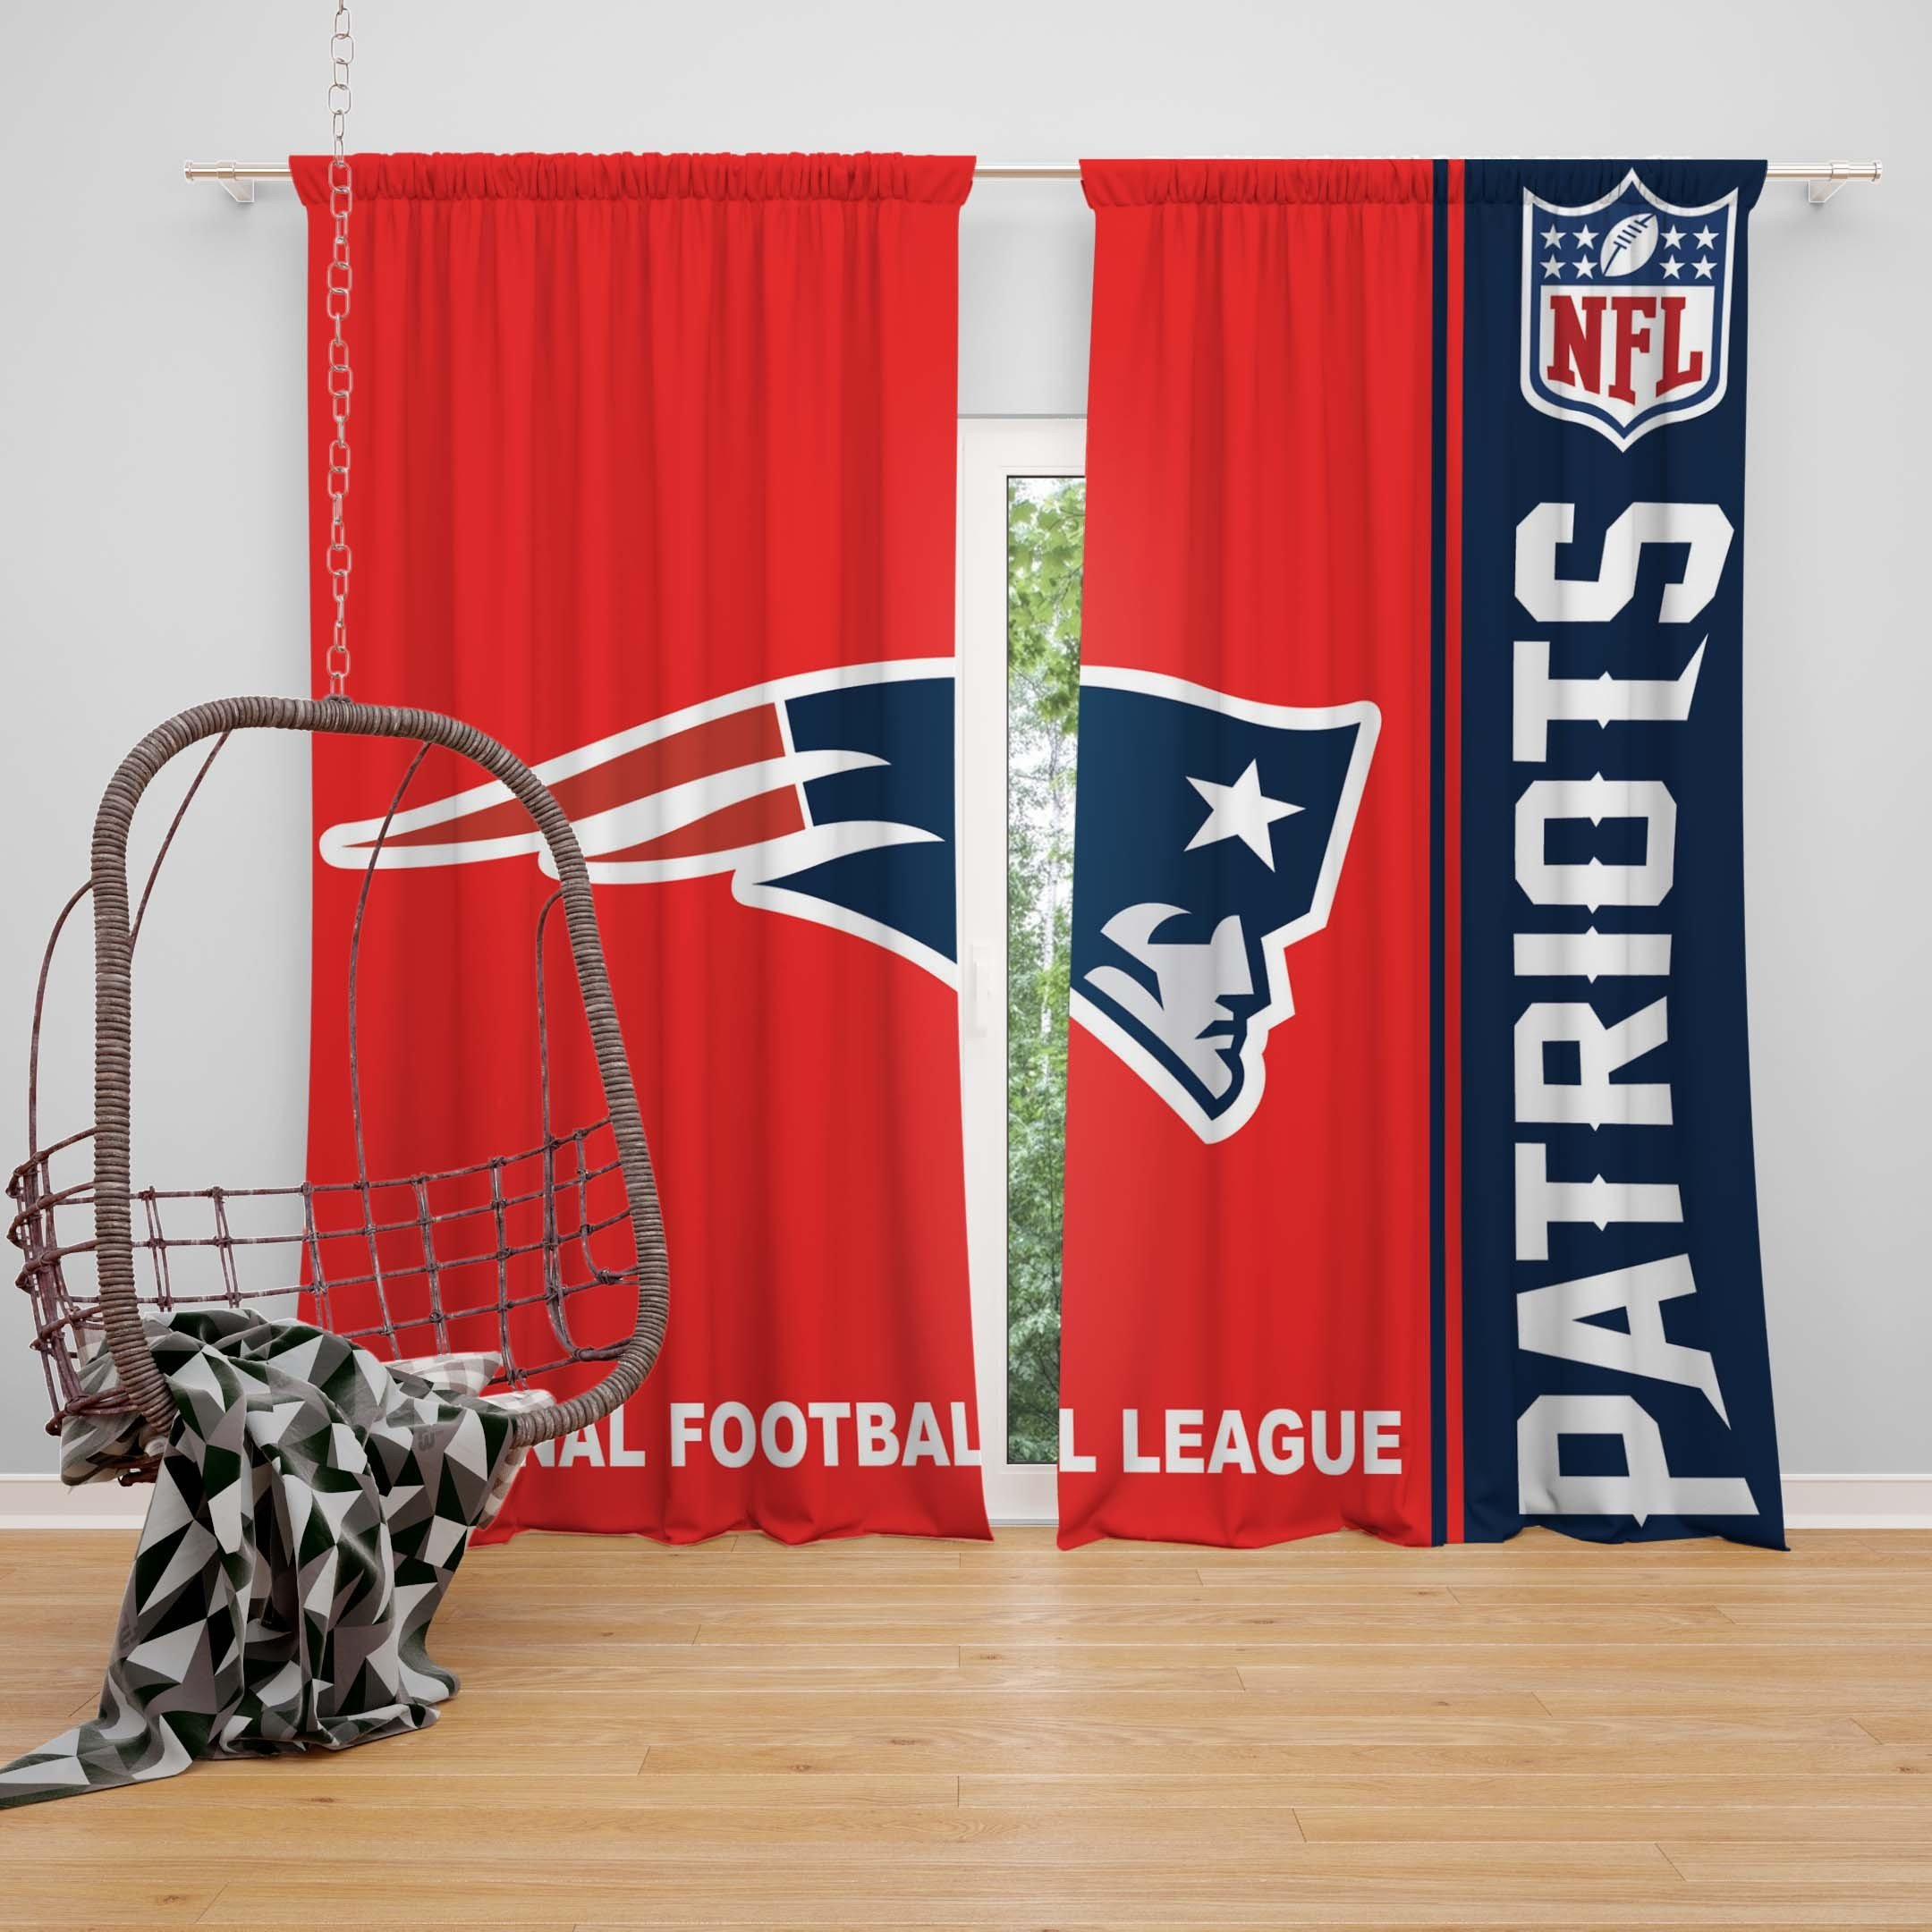 Best Nfl New England Patriots Bedroom Curtain Ebeddingsets With Pictures